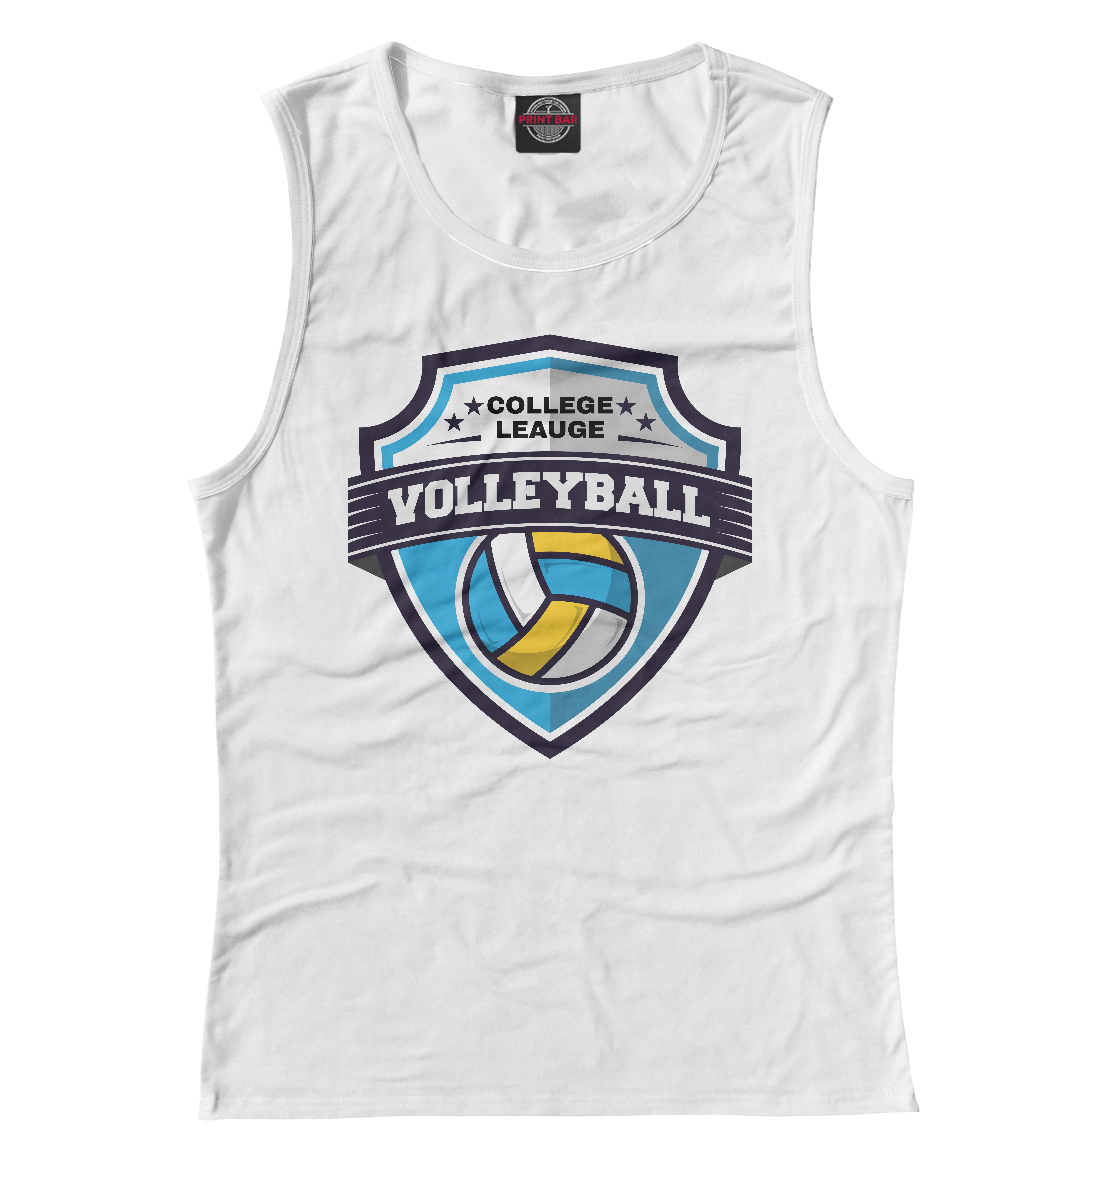 Купить Volleyball, Printbar, Майки, VLB-745031-may-1